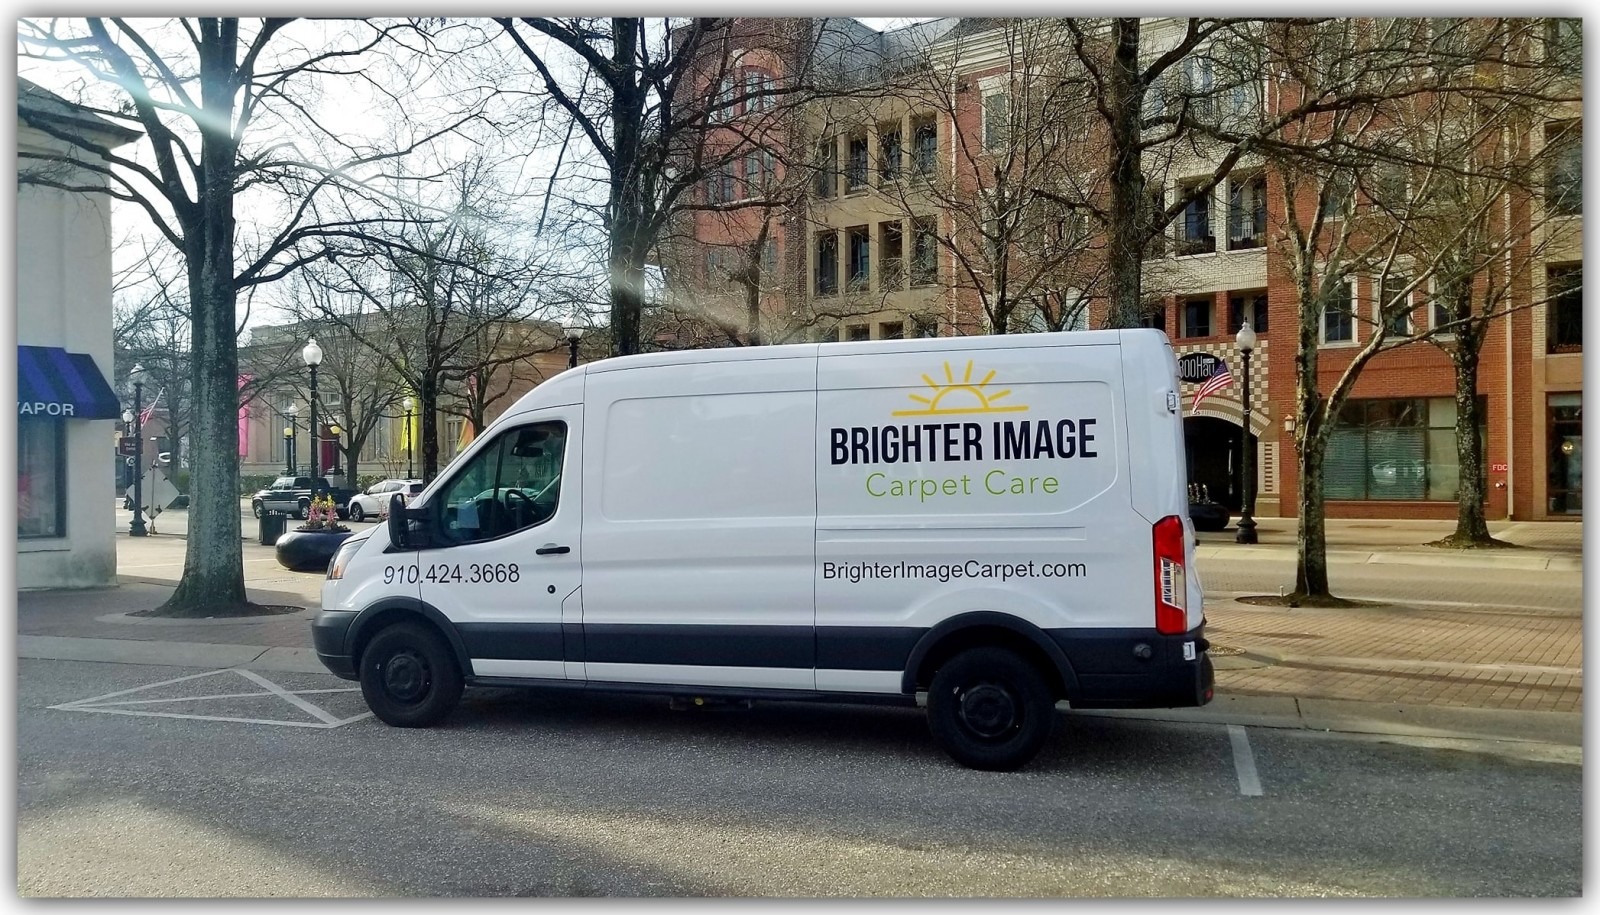 Brighter Image Carpet Care - Proudly Serving Fayetteville for over 30 Years.